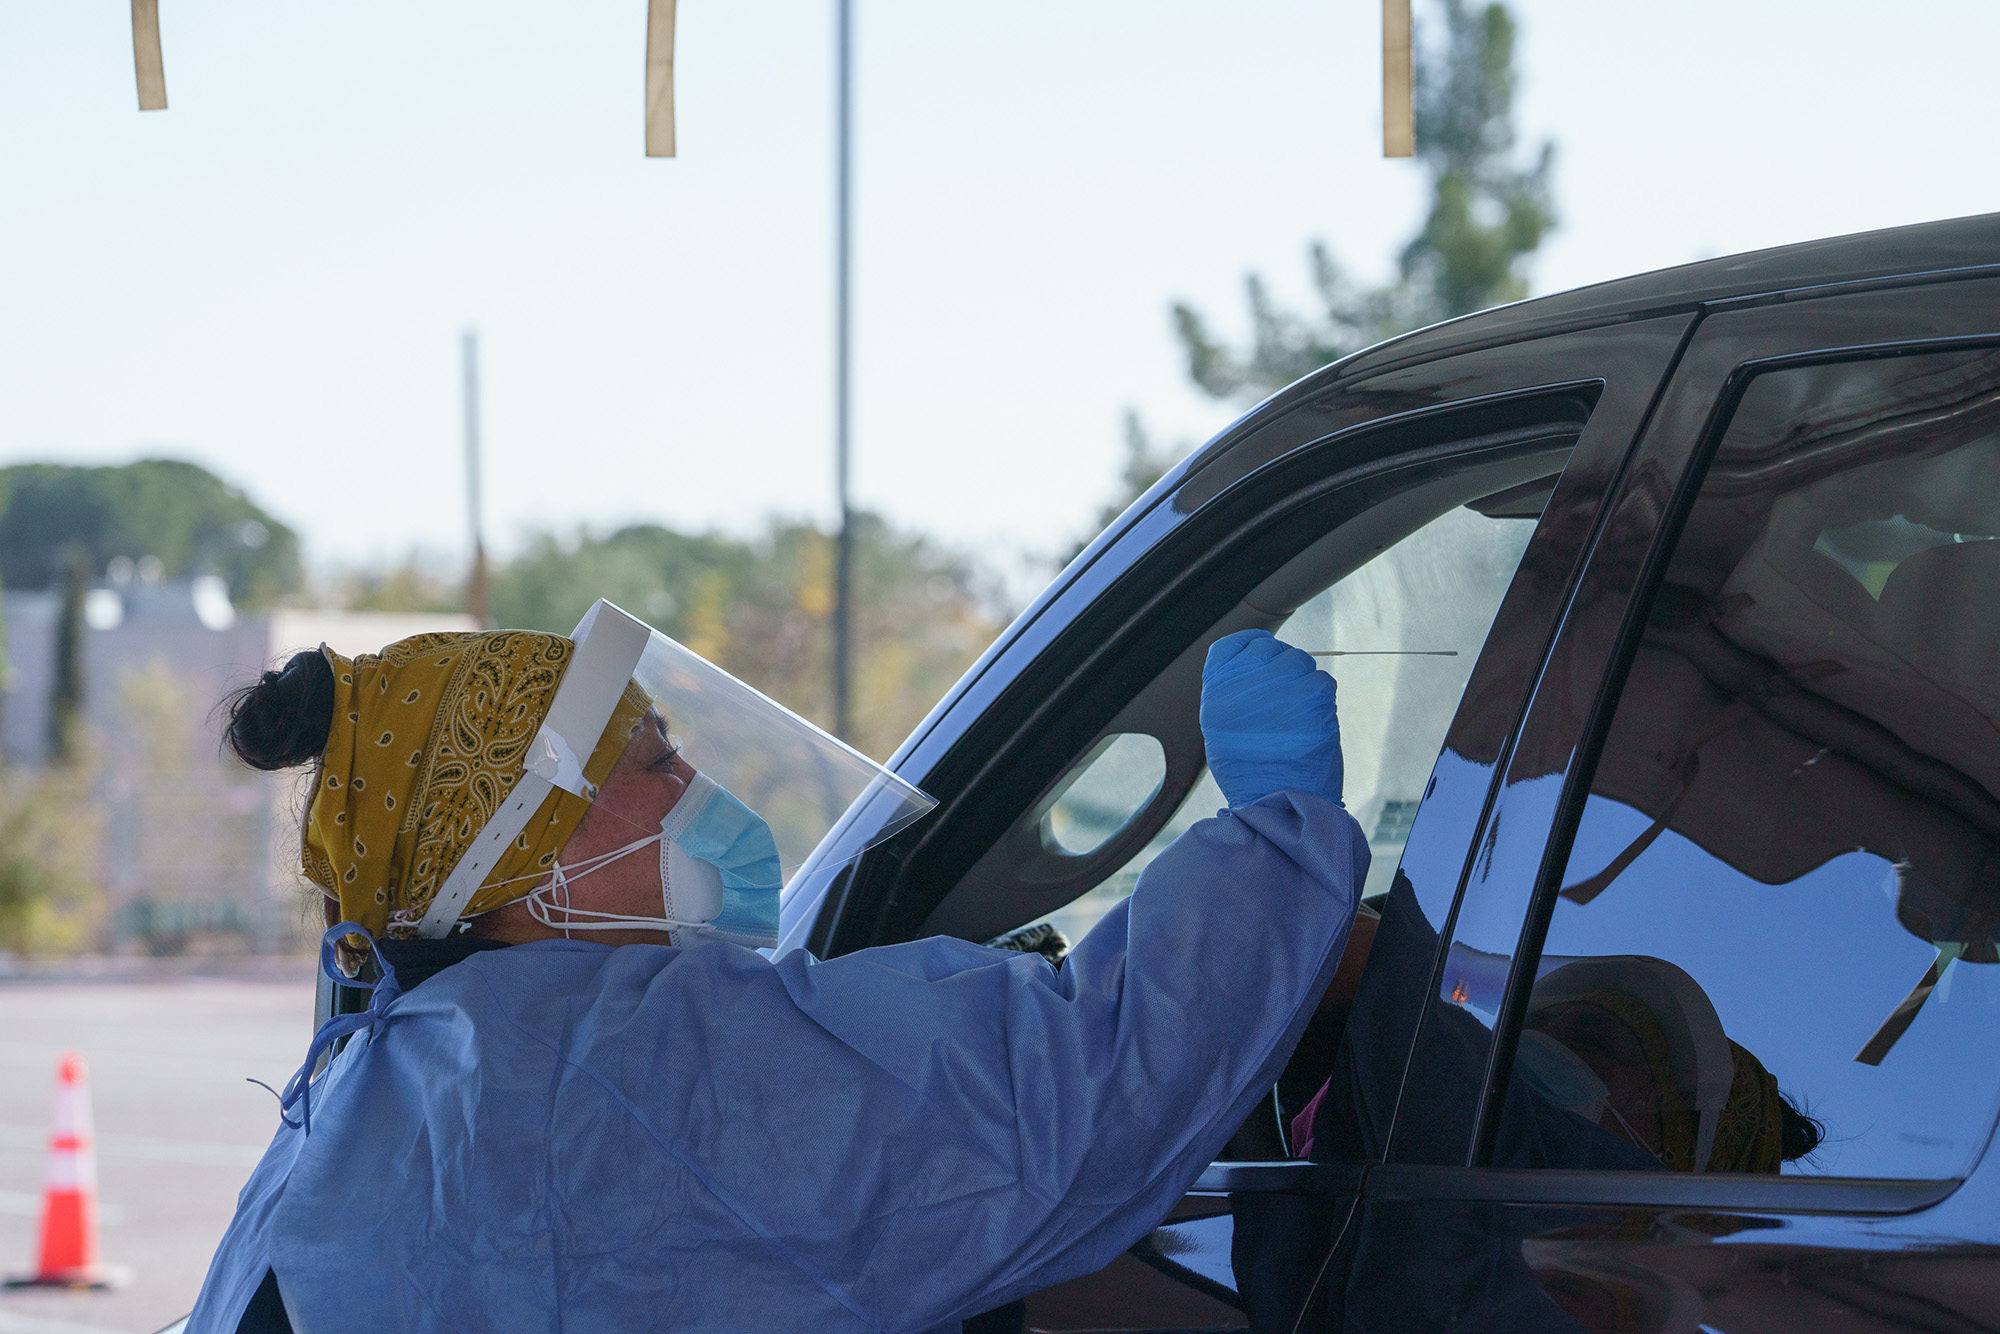 A healthcare worker administers a test at a drive-thru Covid-19 testing site in El Paso, Texas, on Monday, November 30, 2020.